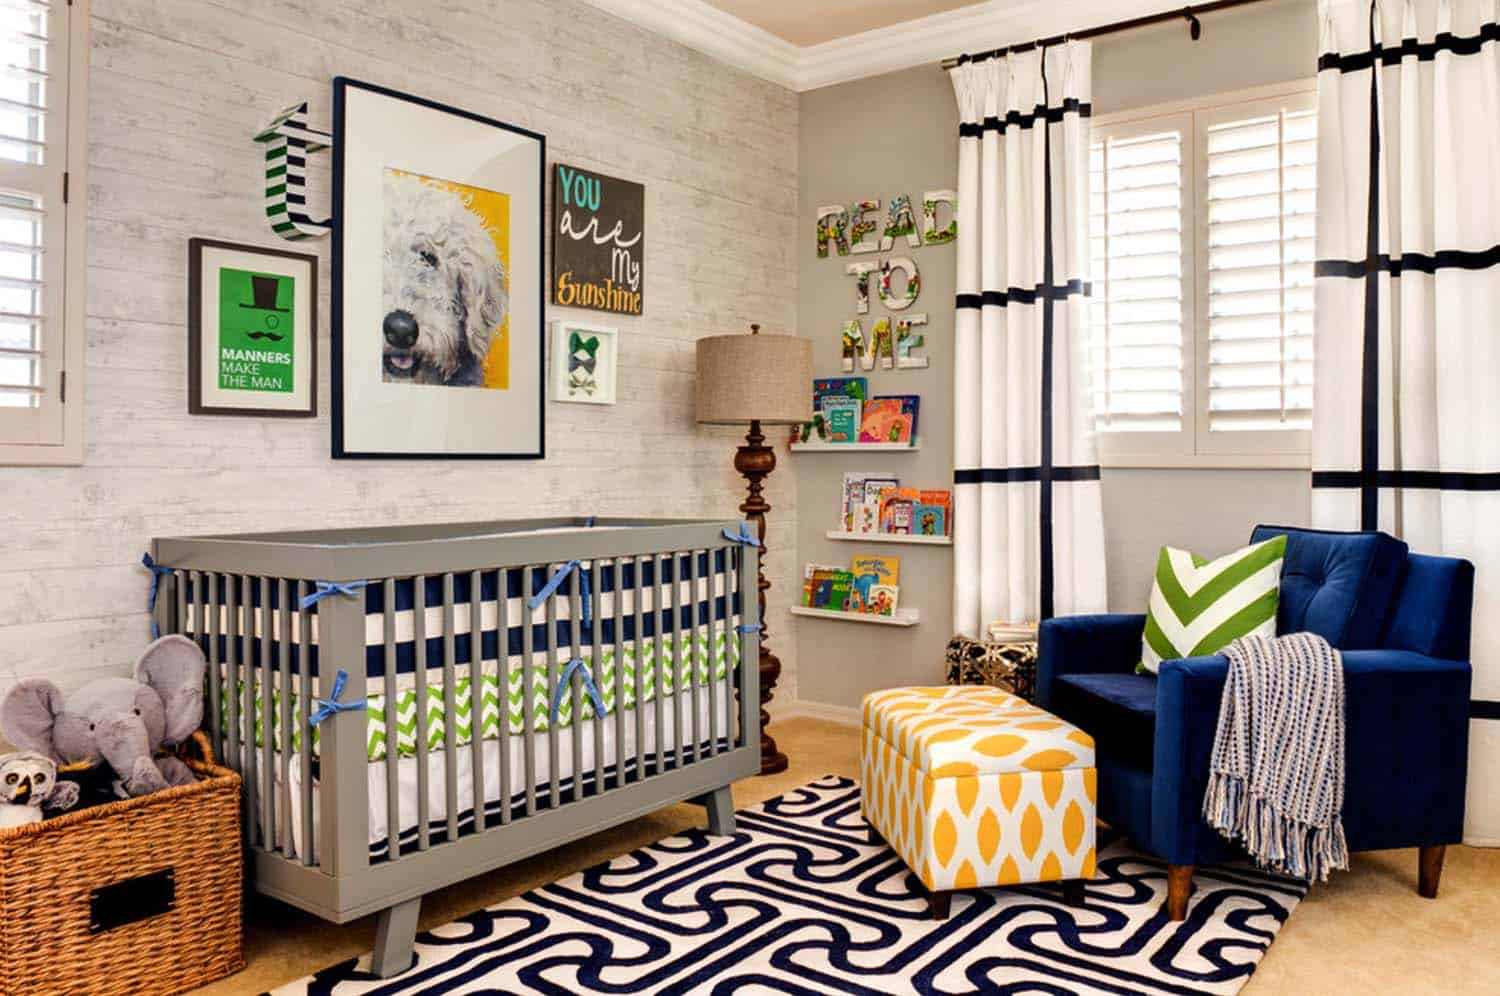 Stylish Nursery Decorating Ideas-01-1 Kindesign